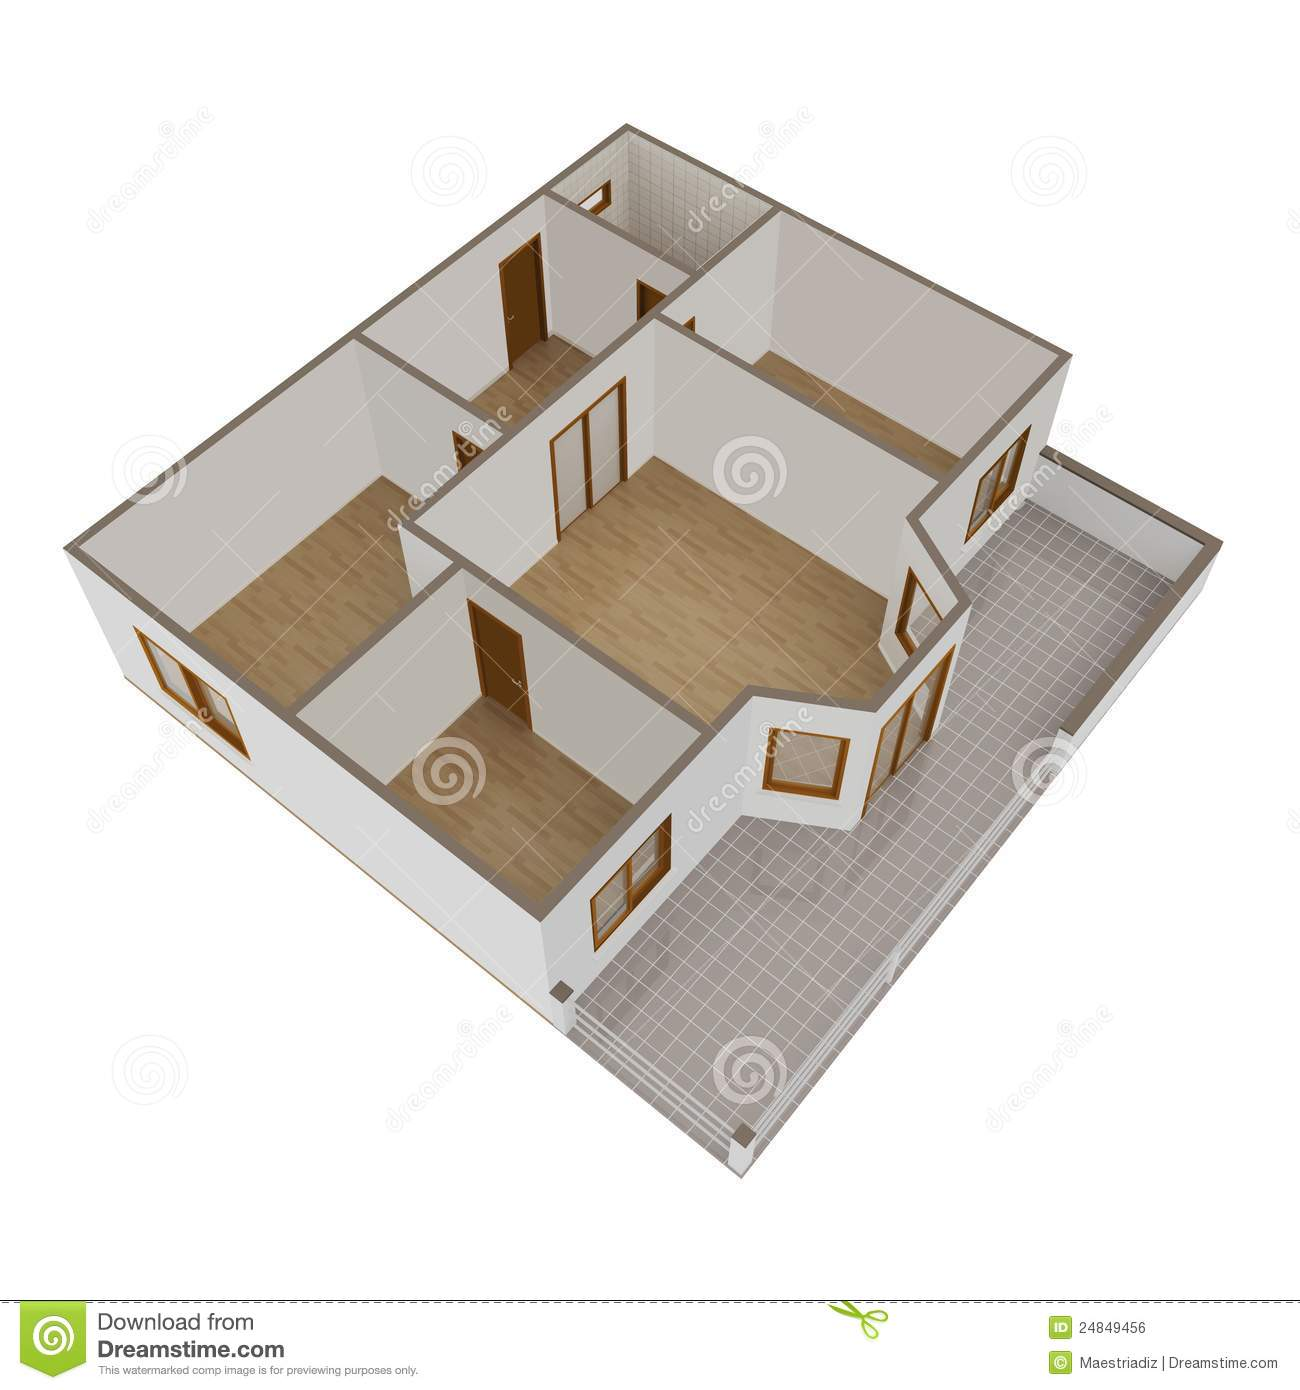 3d model flat with balcony royalty free stock image for Balcony models